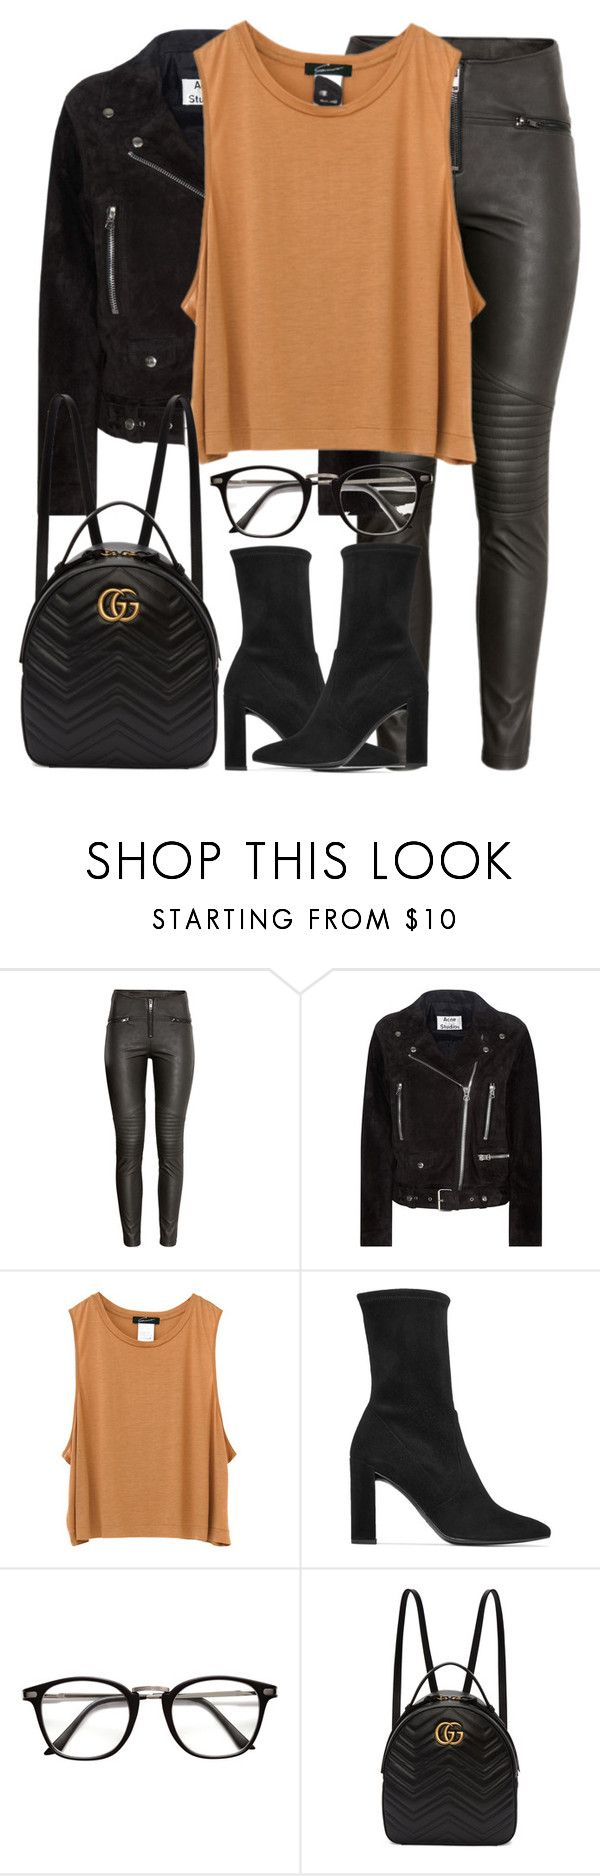 """Untitled #3178"" by elenaday on Polyvore featuring H&M, Acne Studios, Stuart Weitzman and Gucci"